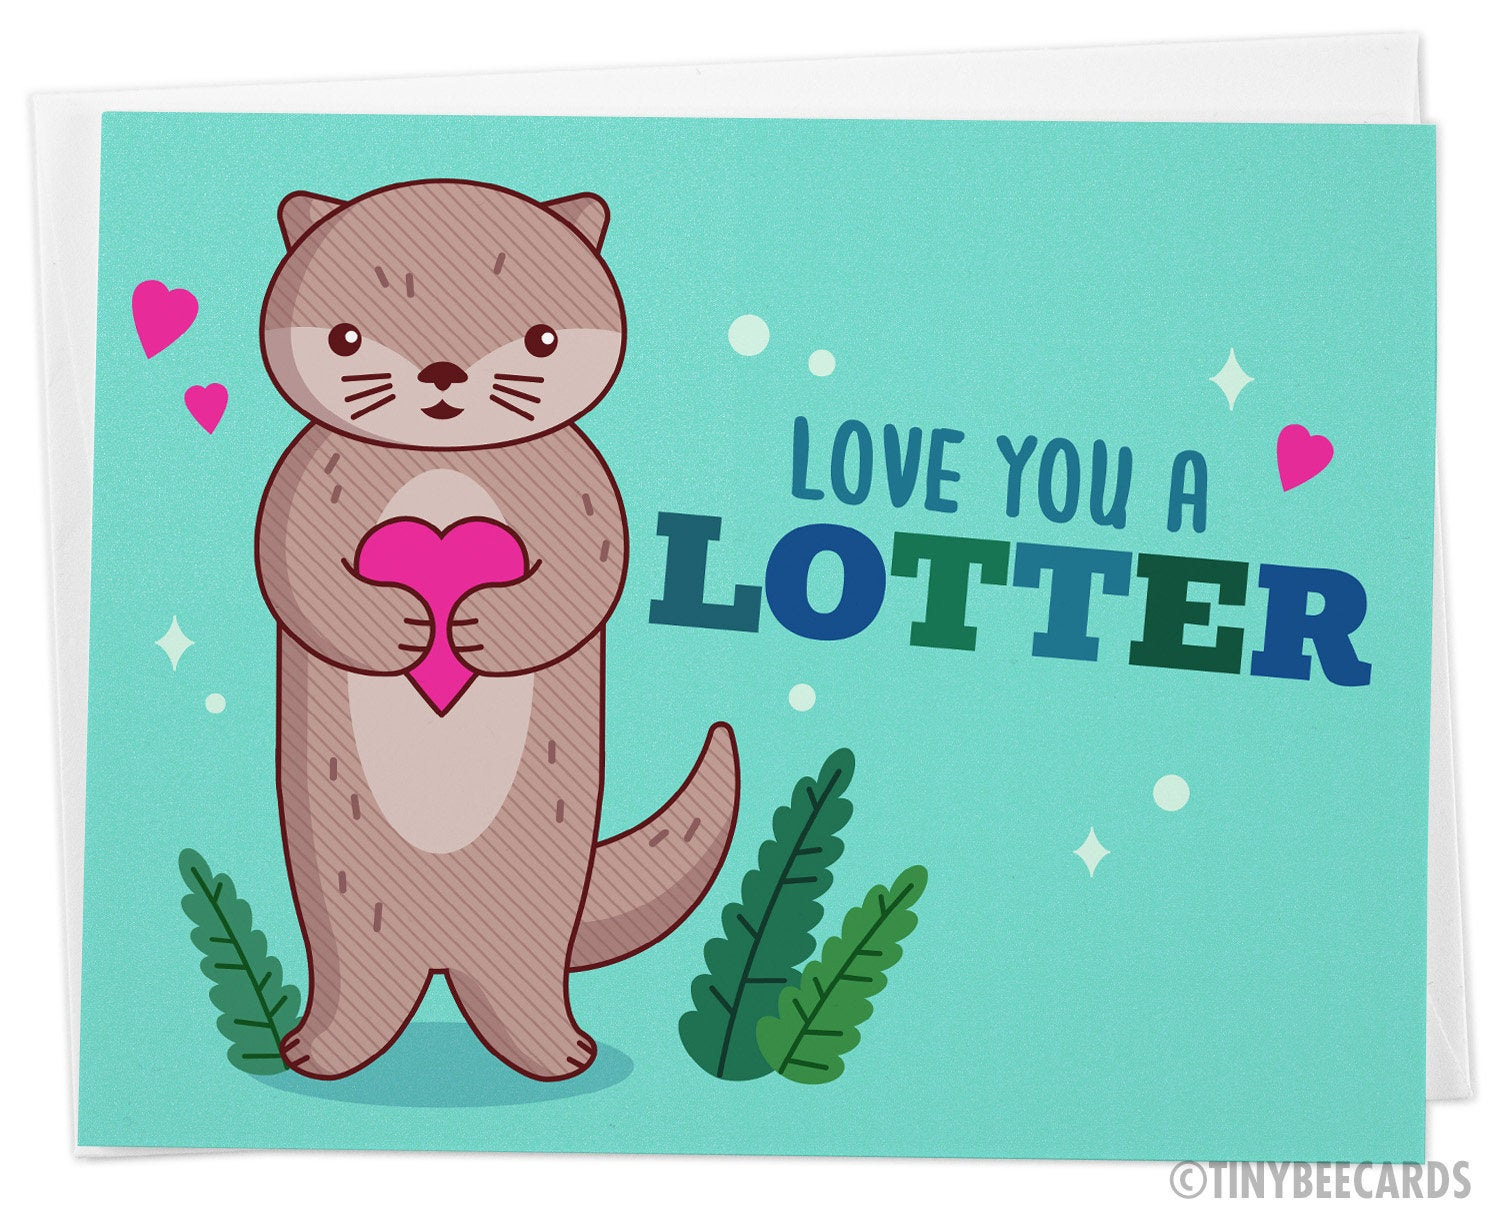 Otter Love Card 'Love You a Lotter' - cute pun card, cute funny greeting card, anniversary or birthday for boyfriend girlfriend husband wife